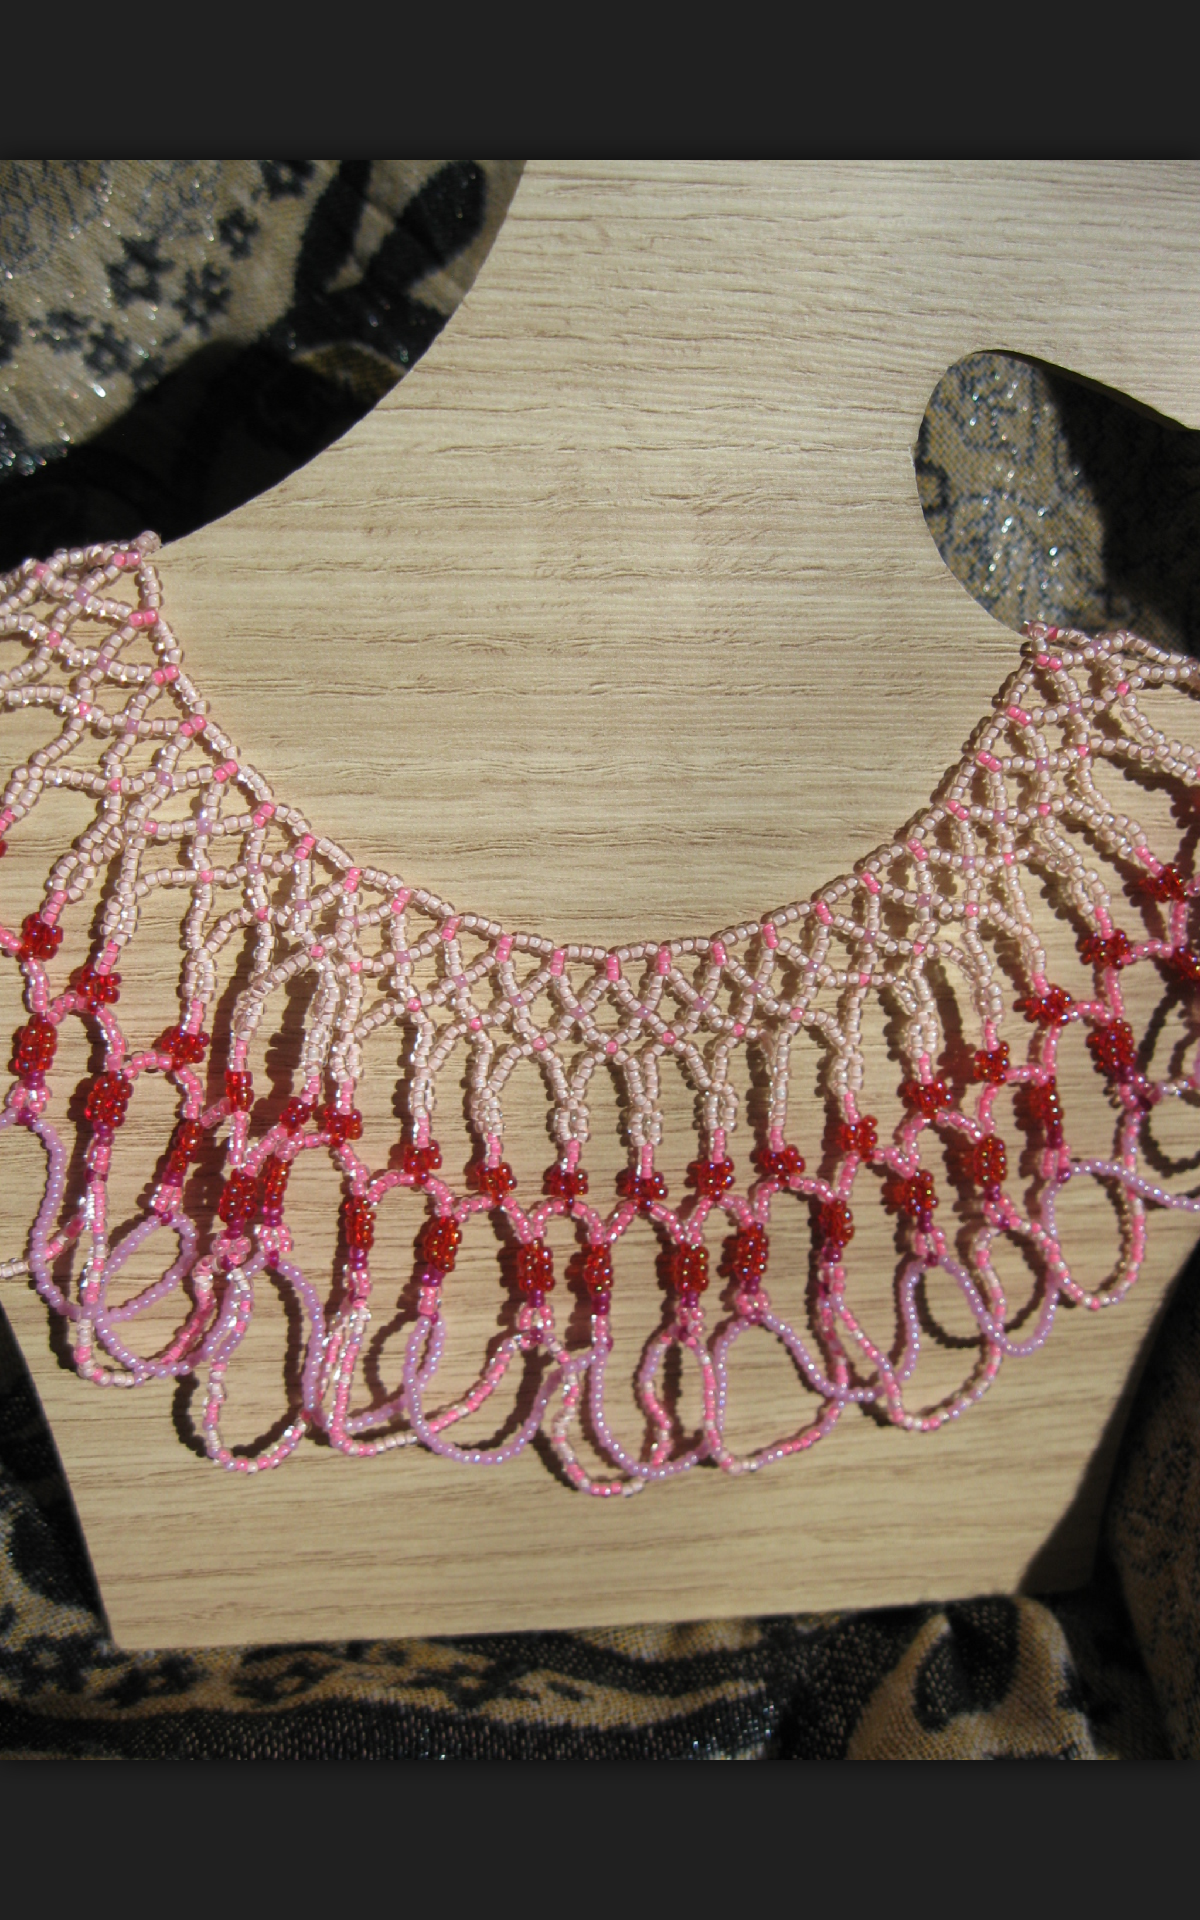 pretty-in-pink-seed-beads-necklace-ta-meu-bem_16859528208_o.png